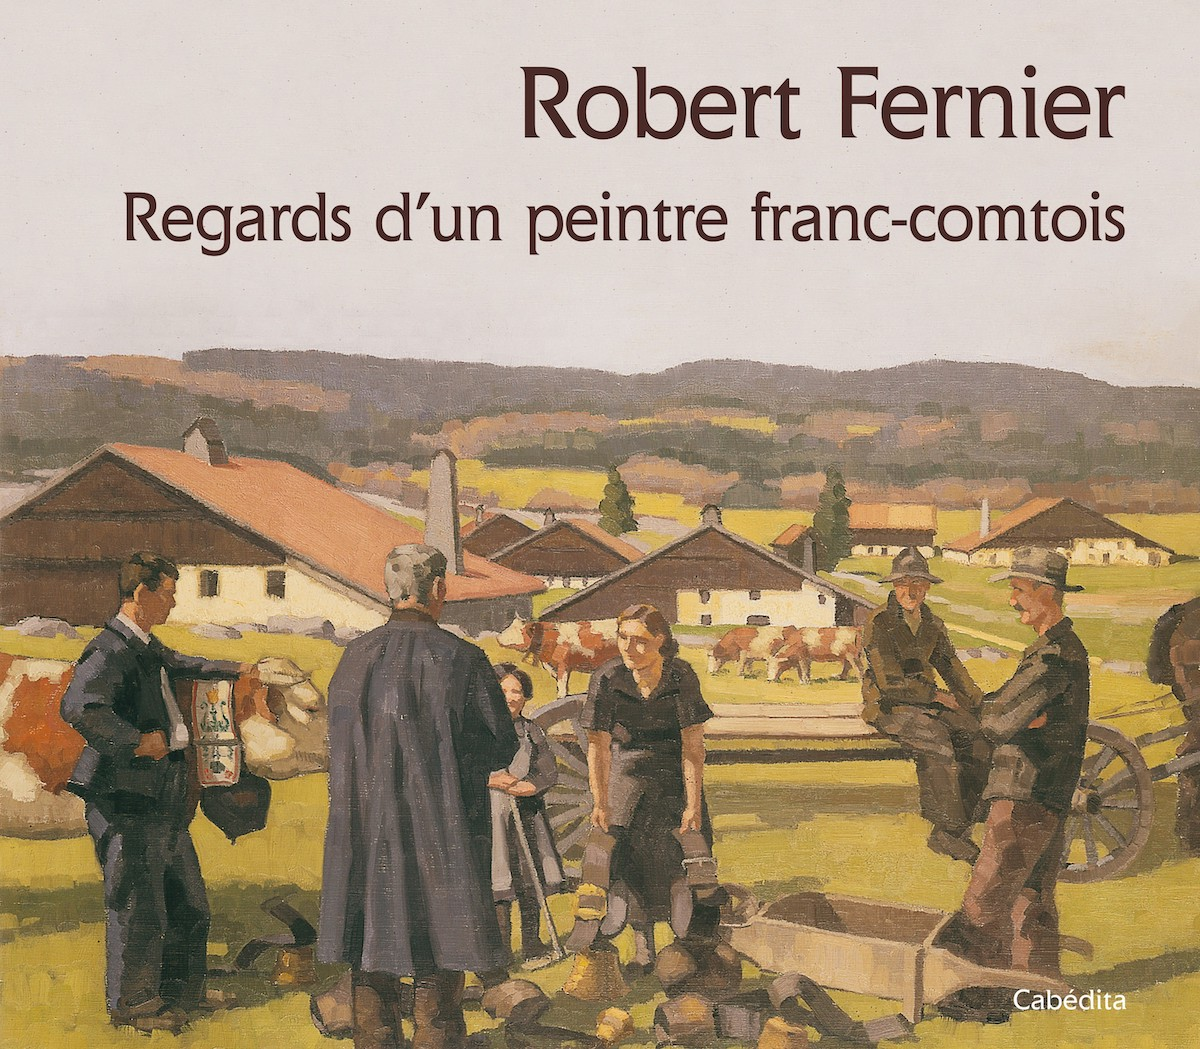 Robert Fernier, Regards d'un peintre franc-comtois